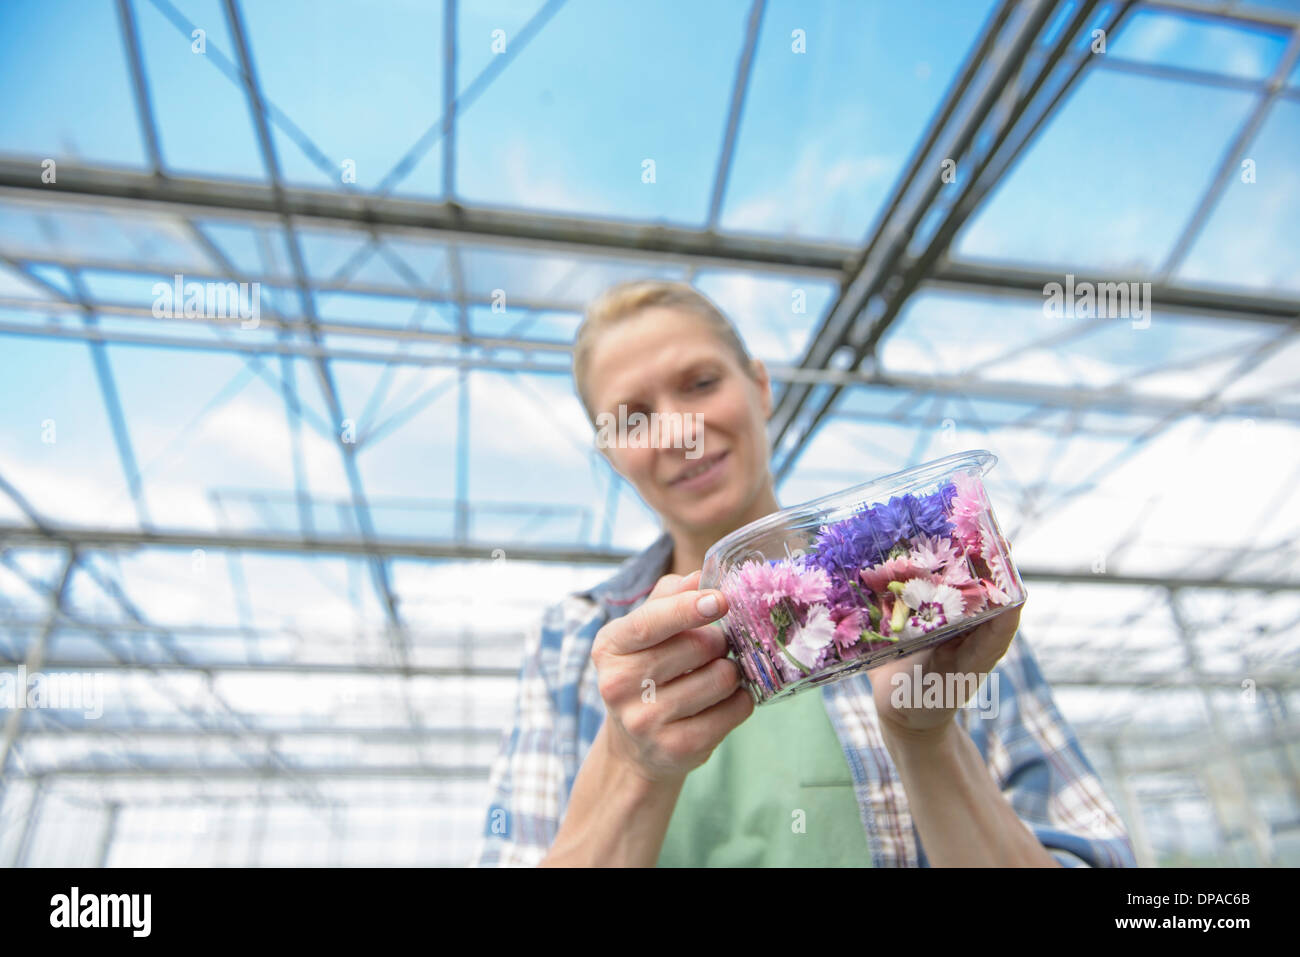 Woman holding fort de fleurs comestibles Photo Stock